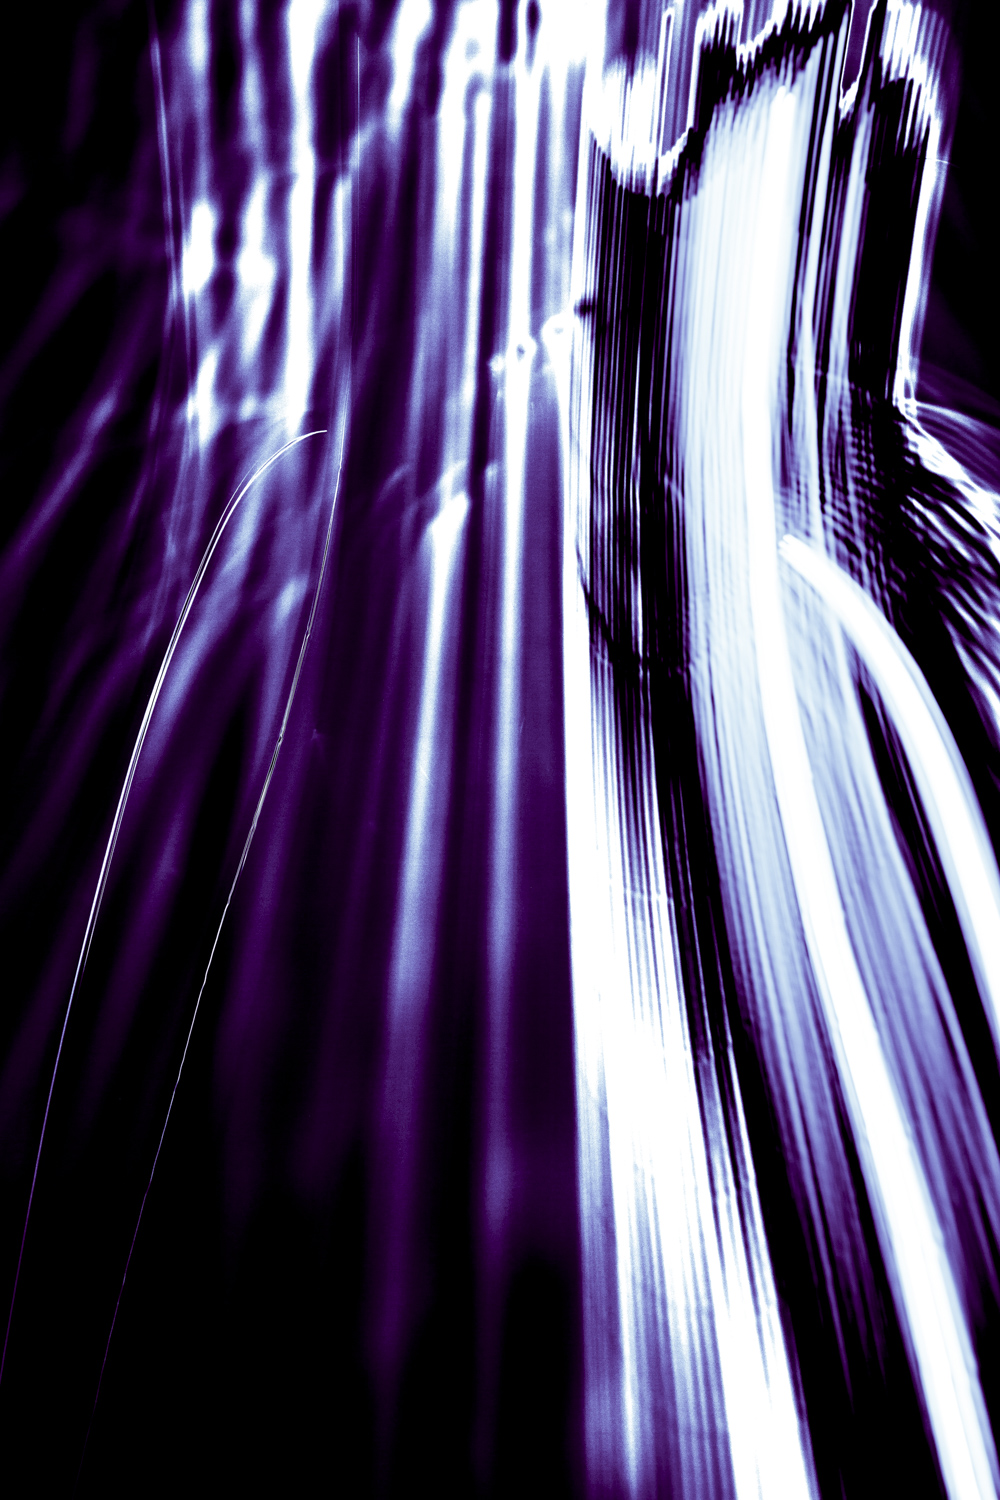 Purple Light-8275-3.jpg